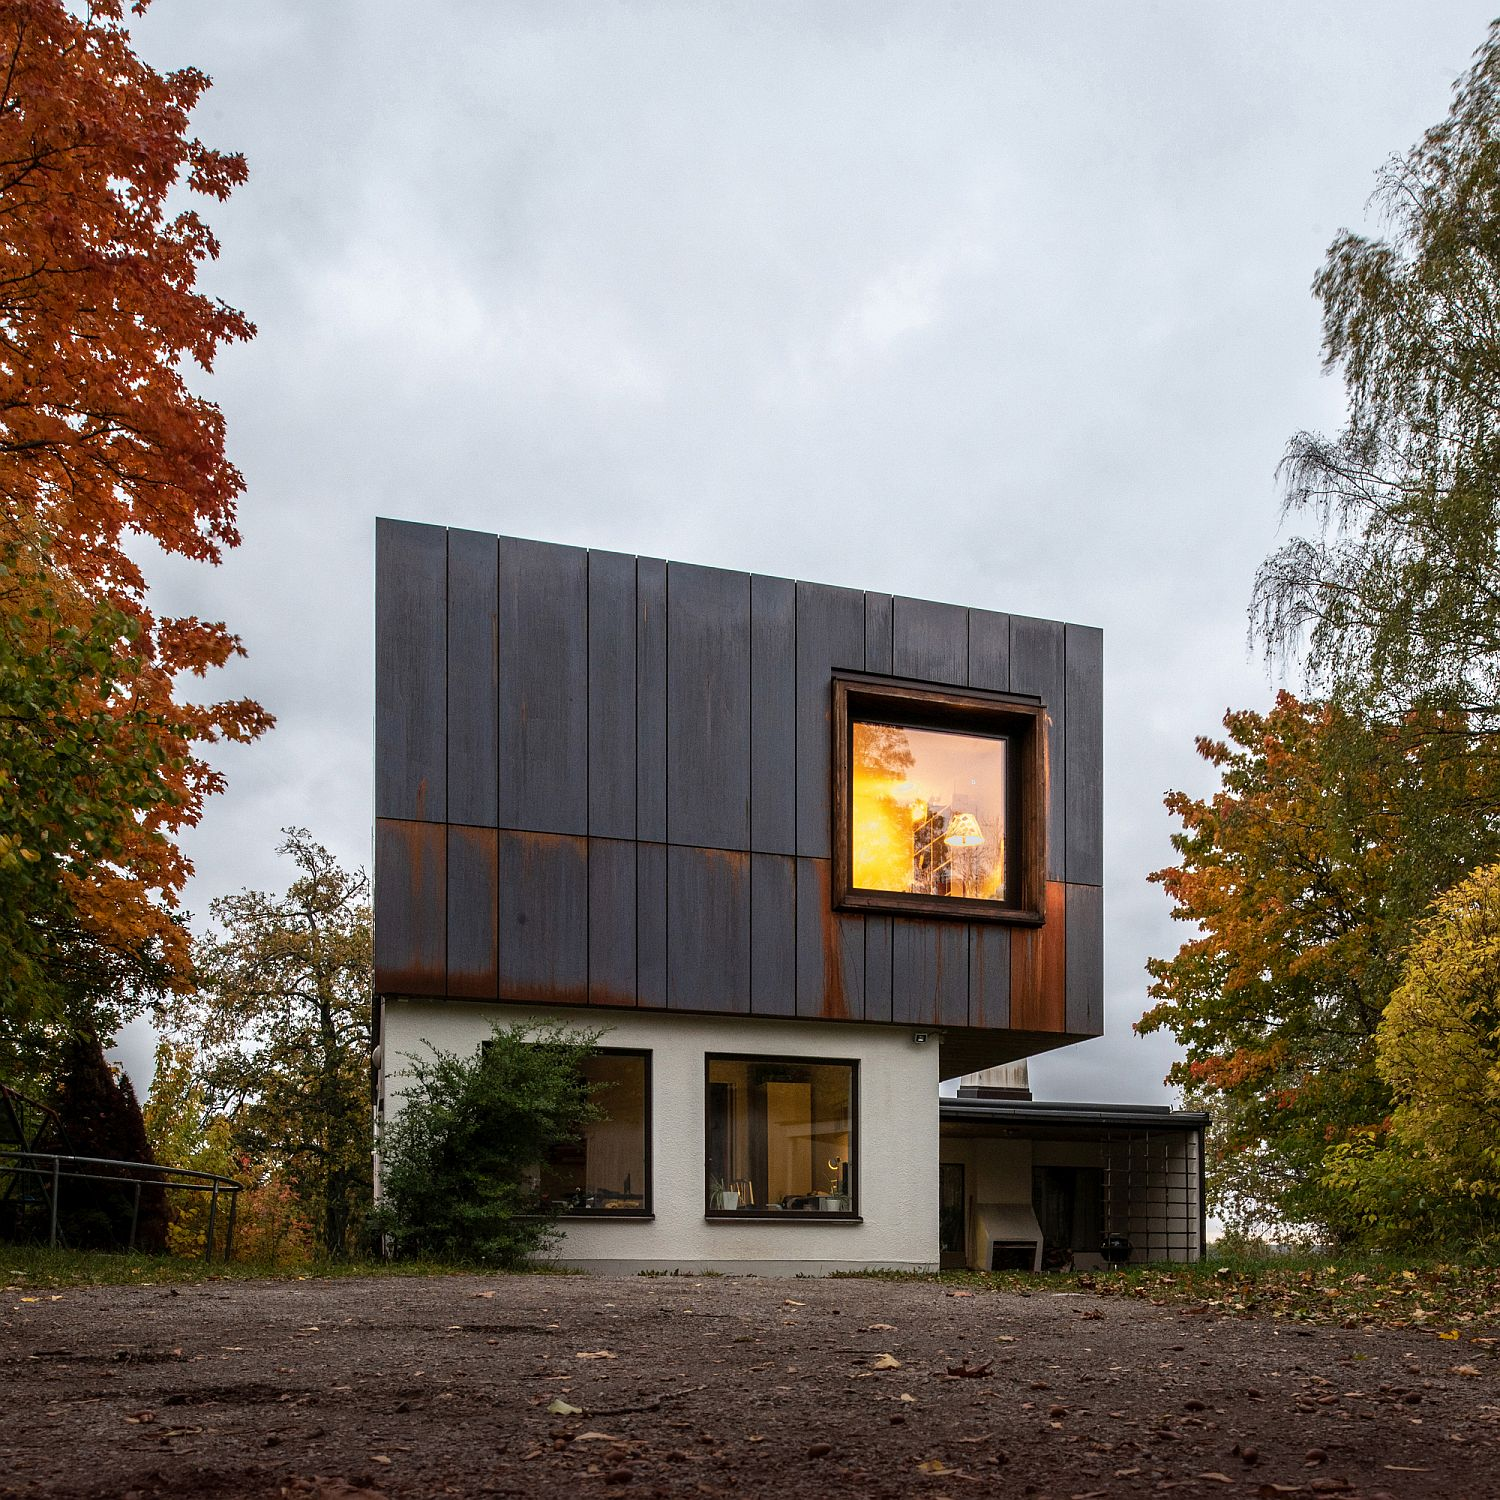 Cyclops window and skylight brings light into the home